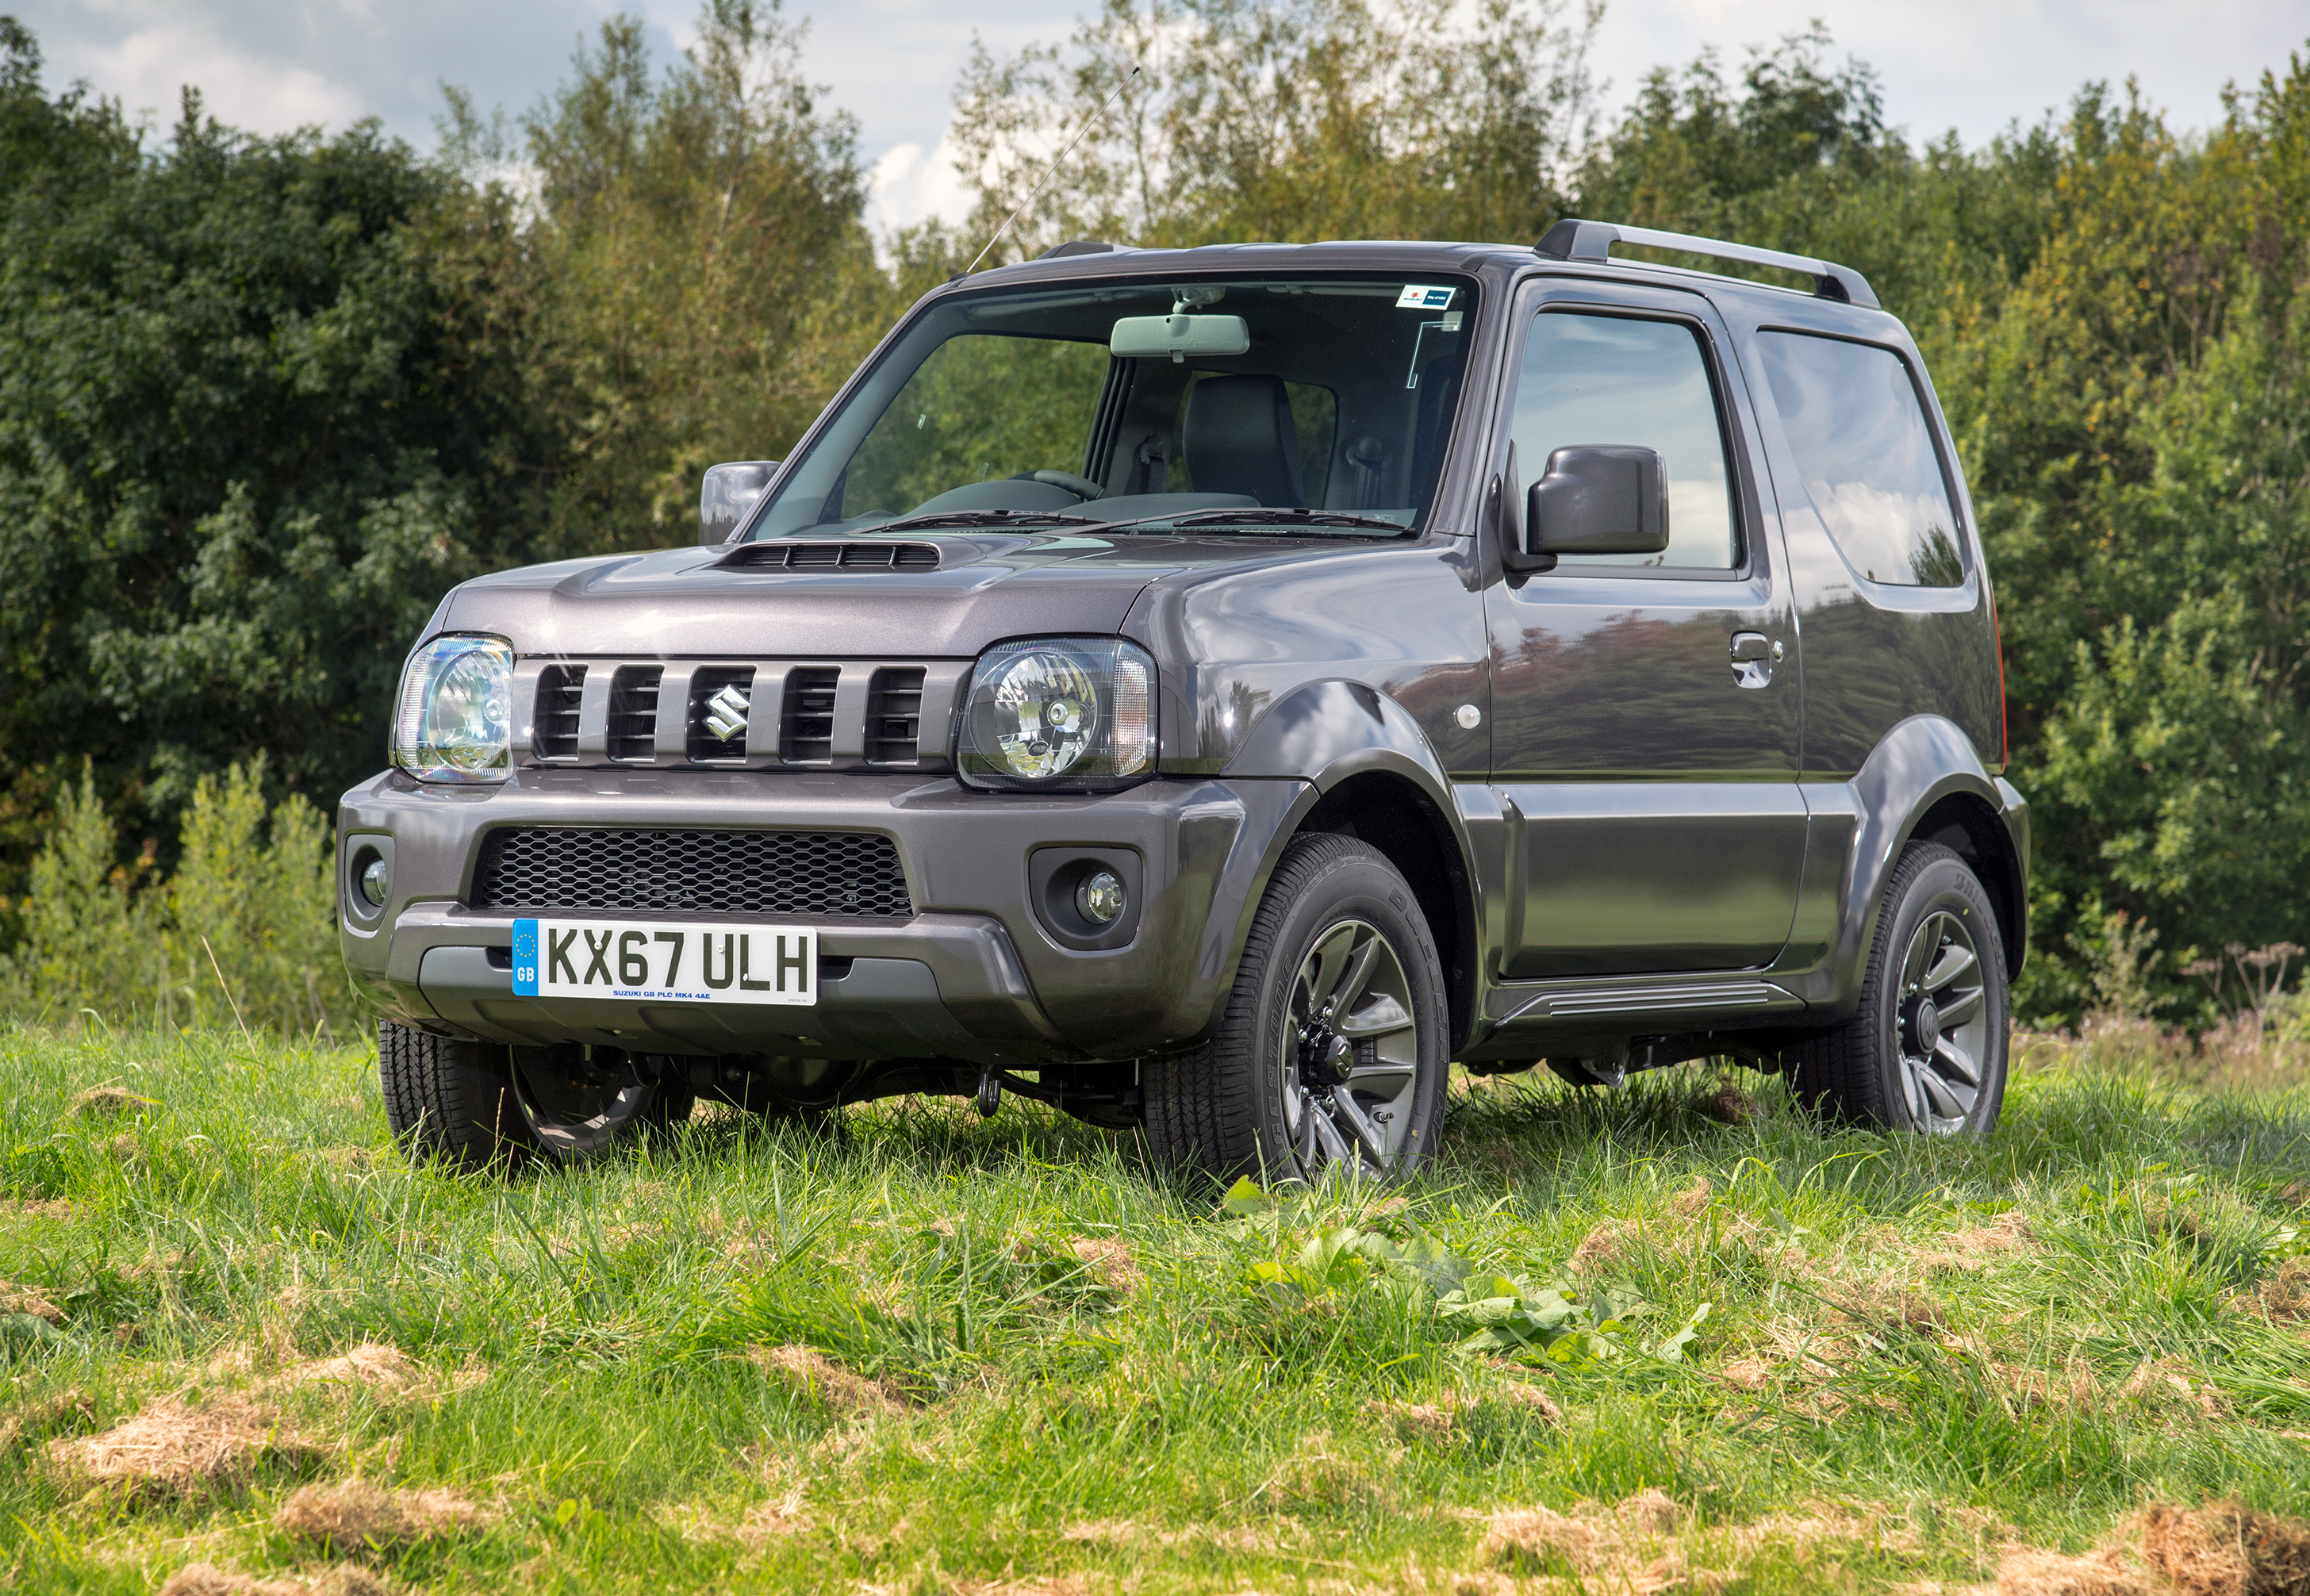 The Jimny remains one of the best off-roaders available